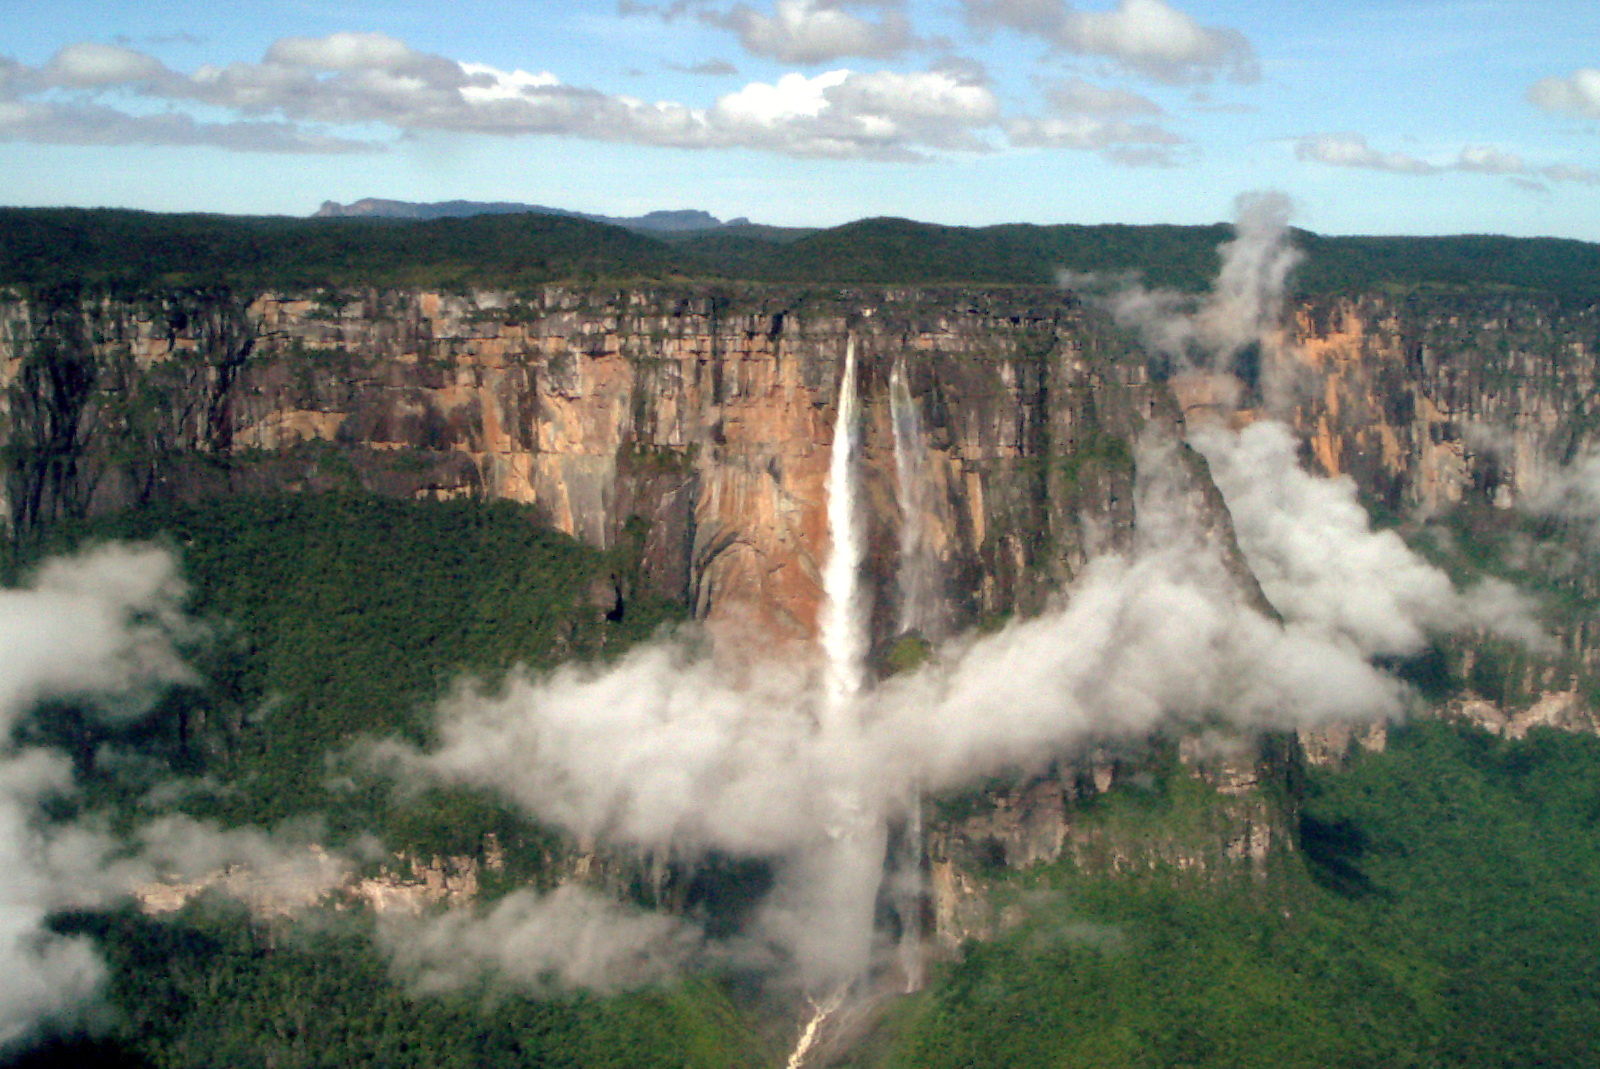 Angel Falls in Venezuela by Francisco Becerro (CC)